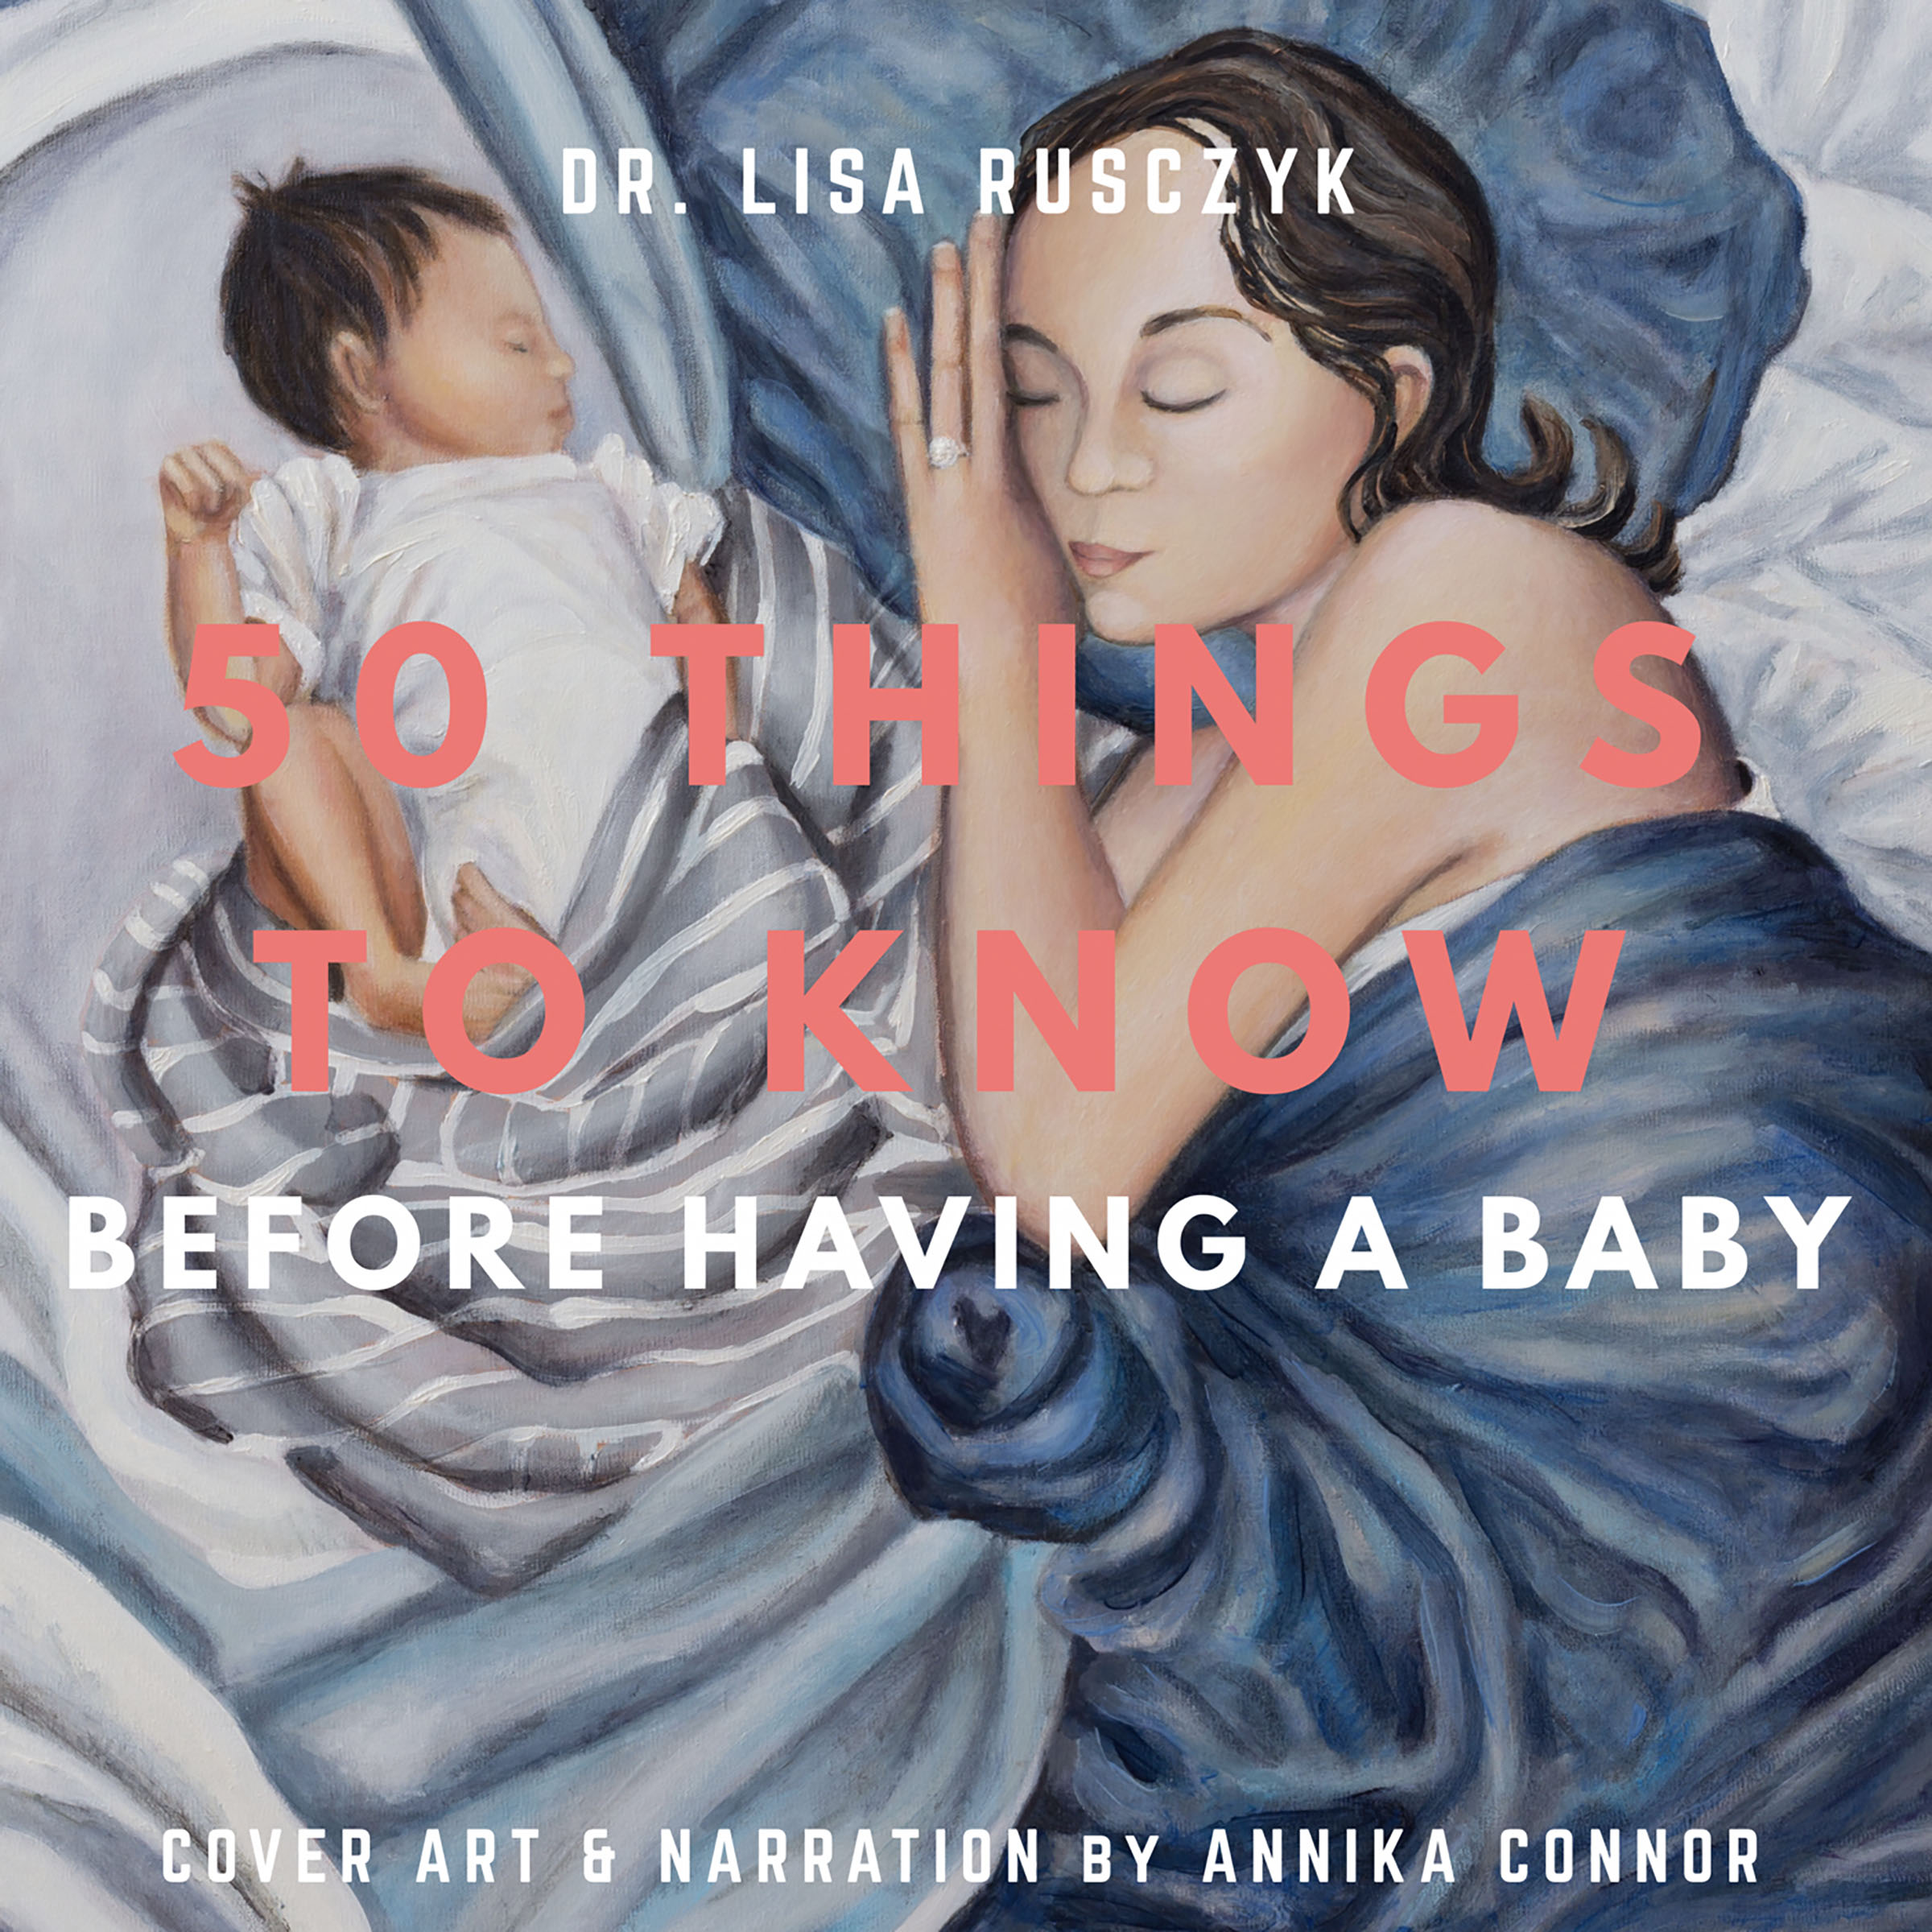 50 Things to Know Before Having a Baby  is written by Lisa Rusczyk with cover art and narration by Annika Connor.